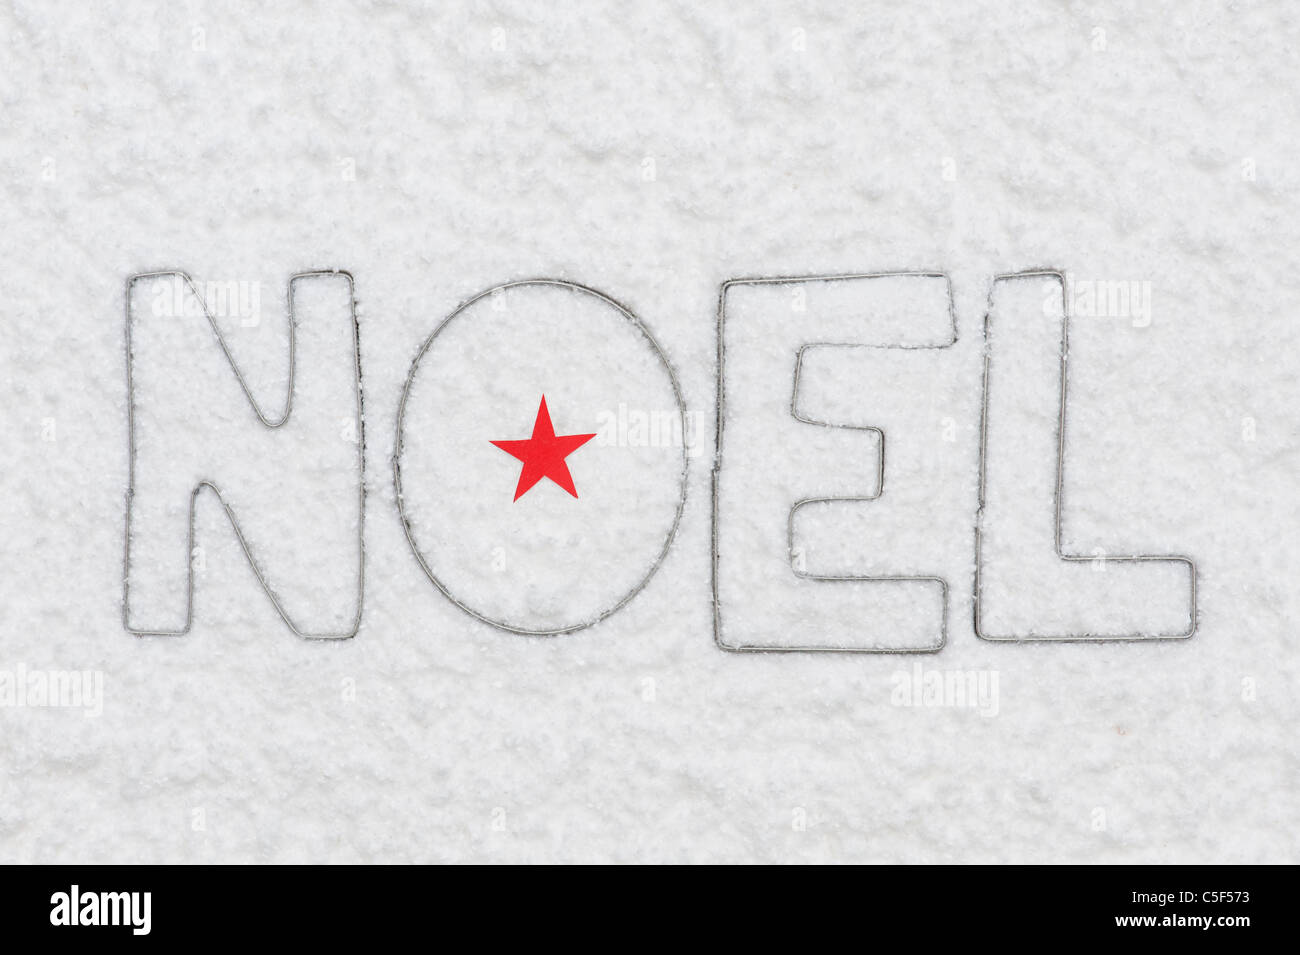 NOEL . Letters star and snow - Stock Image